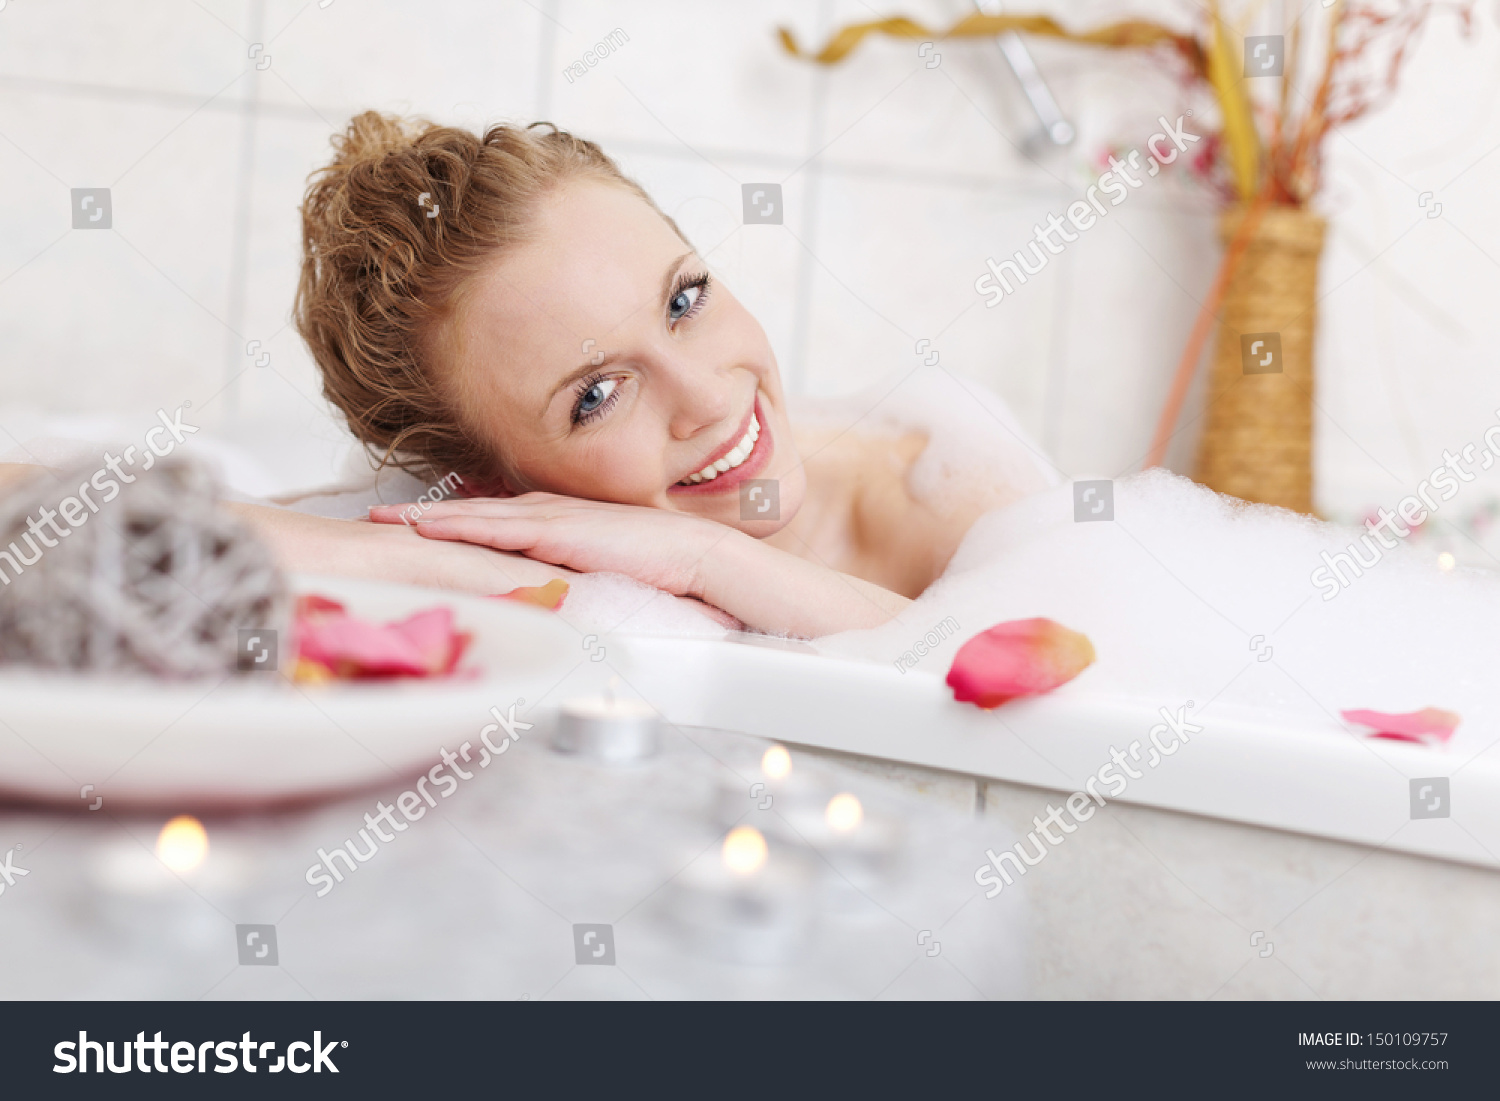 4b94566418 Beautiful woman relaxing in a foamy bubble bath resting her head on the  side and smiling